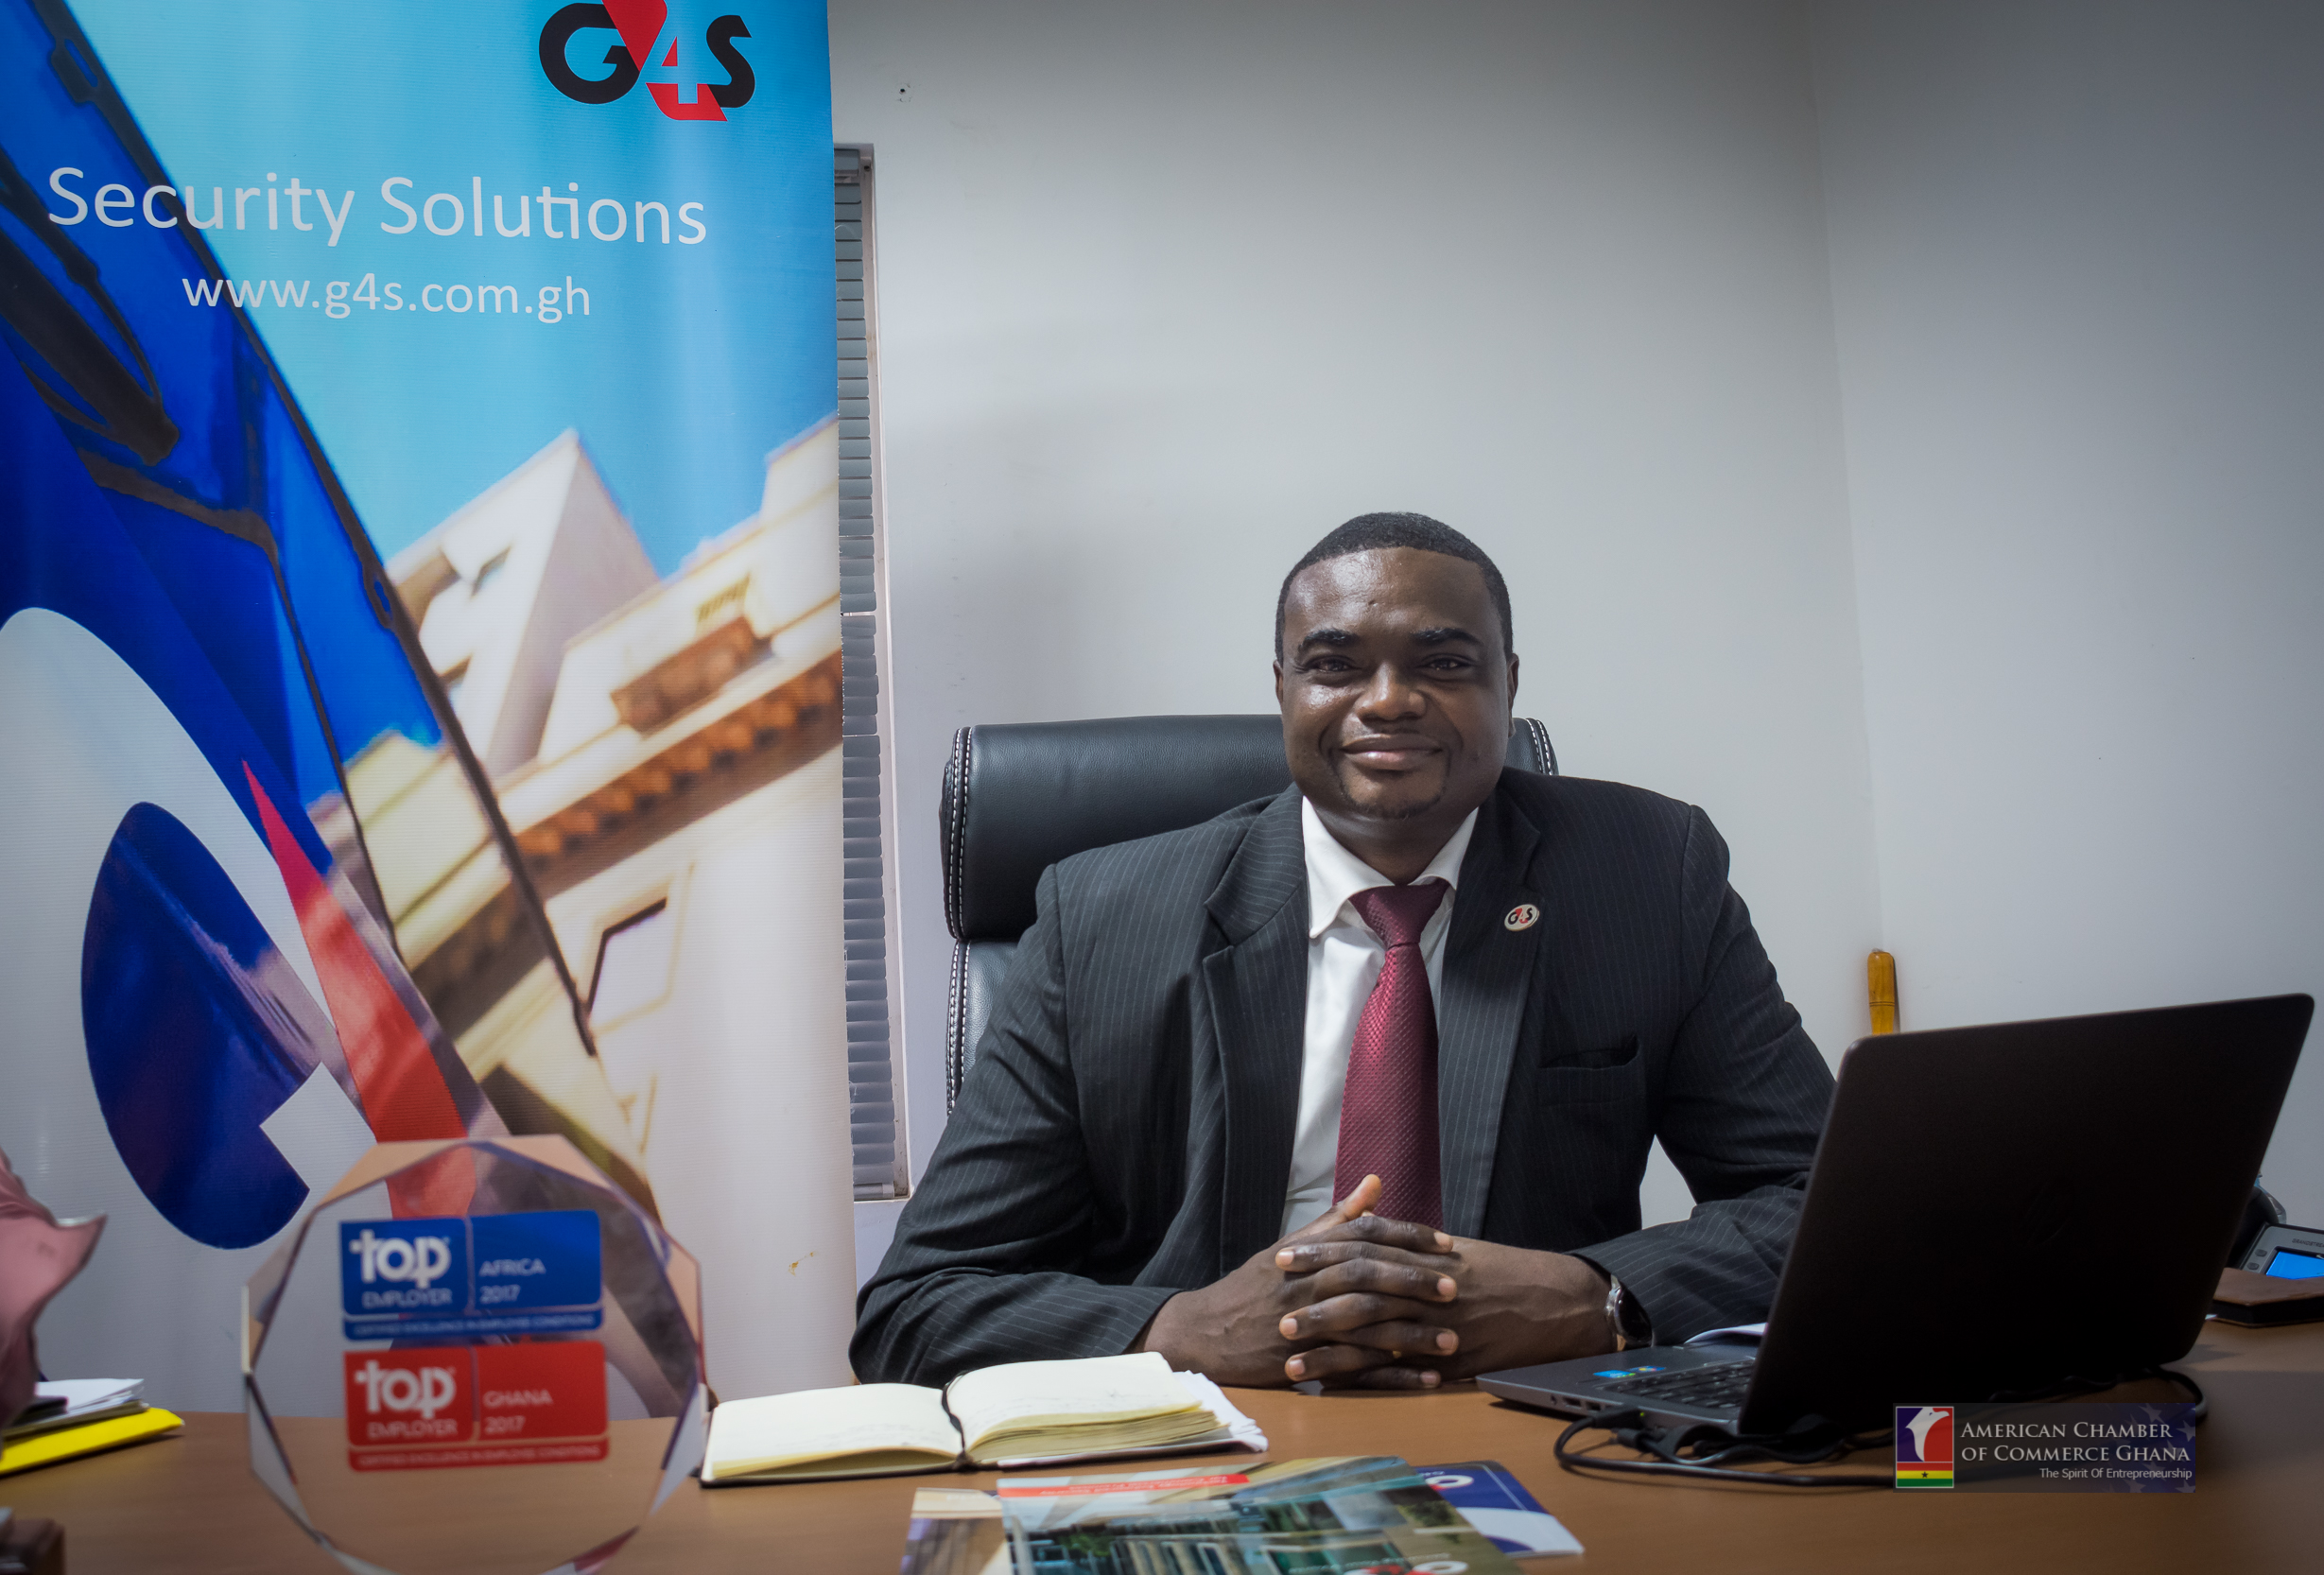 G4s A Leading Integrated Security Solutions Company In